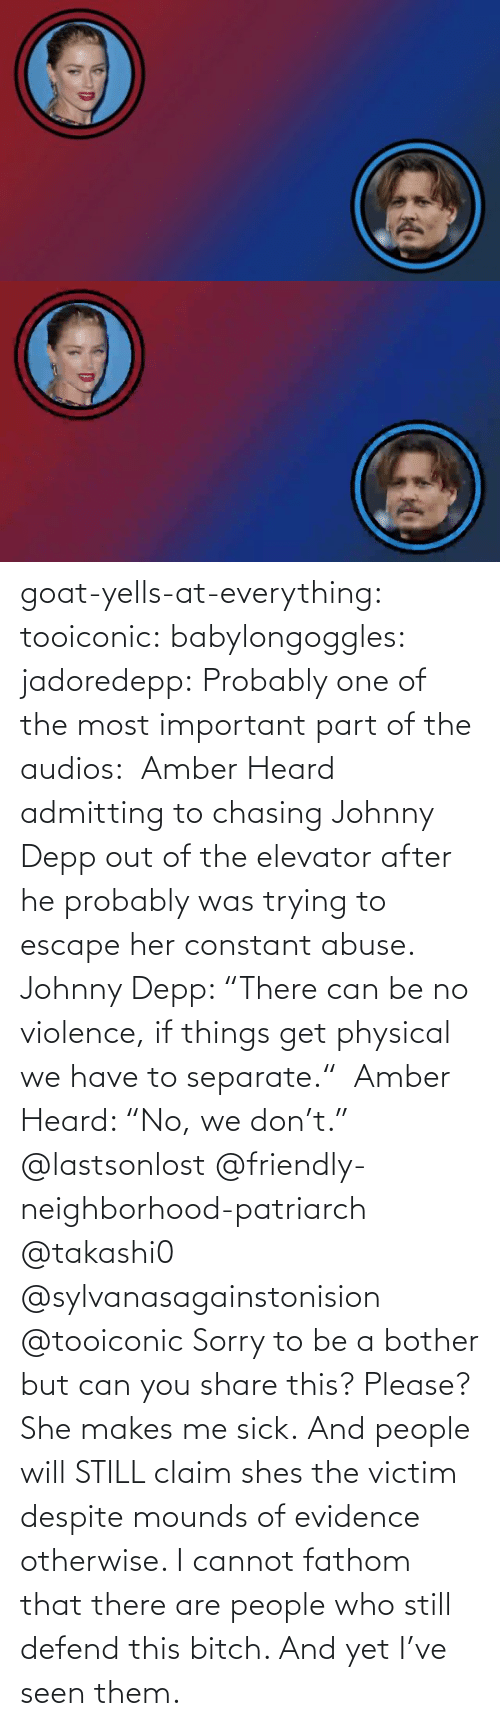 "escape: goat-yells-at-everything:  tooiconic:  babylongoggles:  jadoredepp:  Probably one of the most important part of the audios:  Amber Heard admitting to chasing Johnny Depp out of the elevator after he probably was trying to escape her constant abuse.  Johnny Depp: ""There can be no violence, if things get physical we have to separate.""  Amber Heard: ""No, we don't.""  @lastsonlost @friendly-neighborhood-patriarch @takashi0 @sylvanasagainstonision @tooiconic Sorry to be a bother but can you share this? Please?   She makes me sick.   And people will STILL claim shes the victim despite mounds of evidence otherwise.    I cannot fathom that there are people who still defend this bitch. And yet I've seen them."